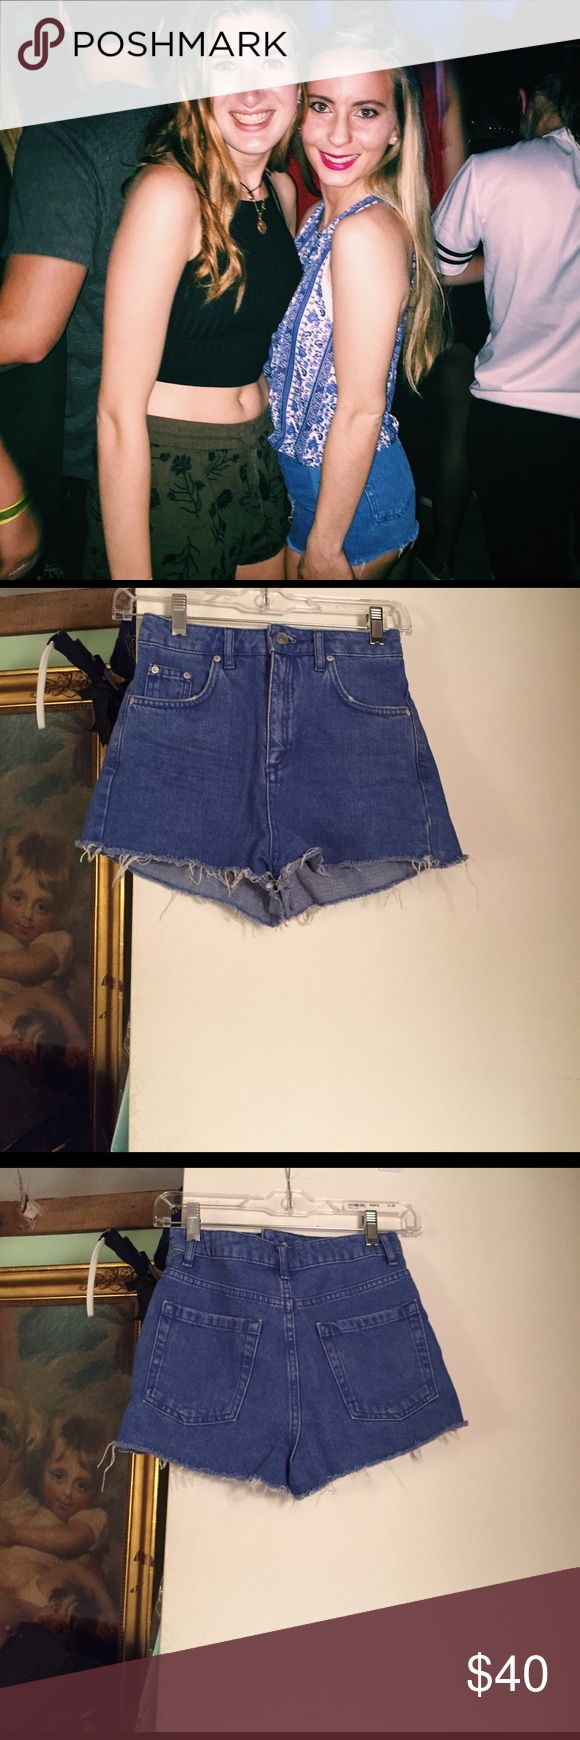 "Topshop High Waisted Jean Shorts Super cute Topshop denim shorts have been worn  once and are in perfect condition! Pockets in the front and the back with belt loops going around the top. Frayed edges, style is called ""Mom jeans"".  For reference I am 5'2 and 104 lbs. VERY OPEN TO OFFERS!! Topshop Shorts Jean Shorts"